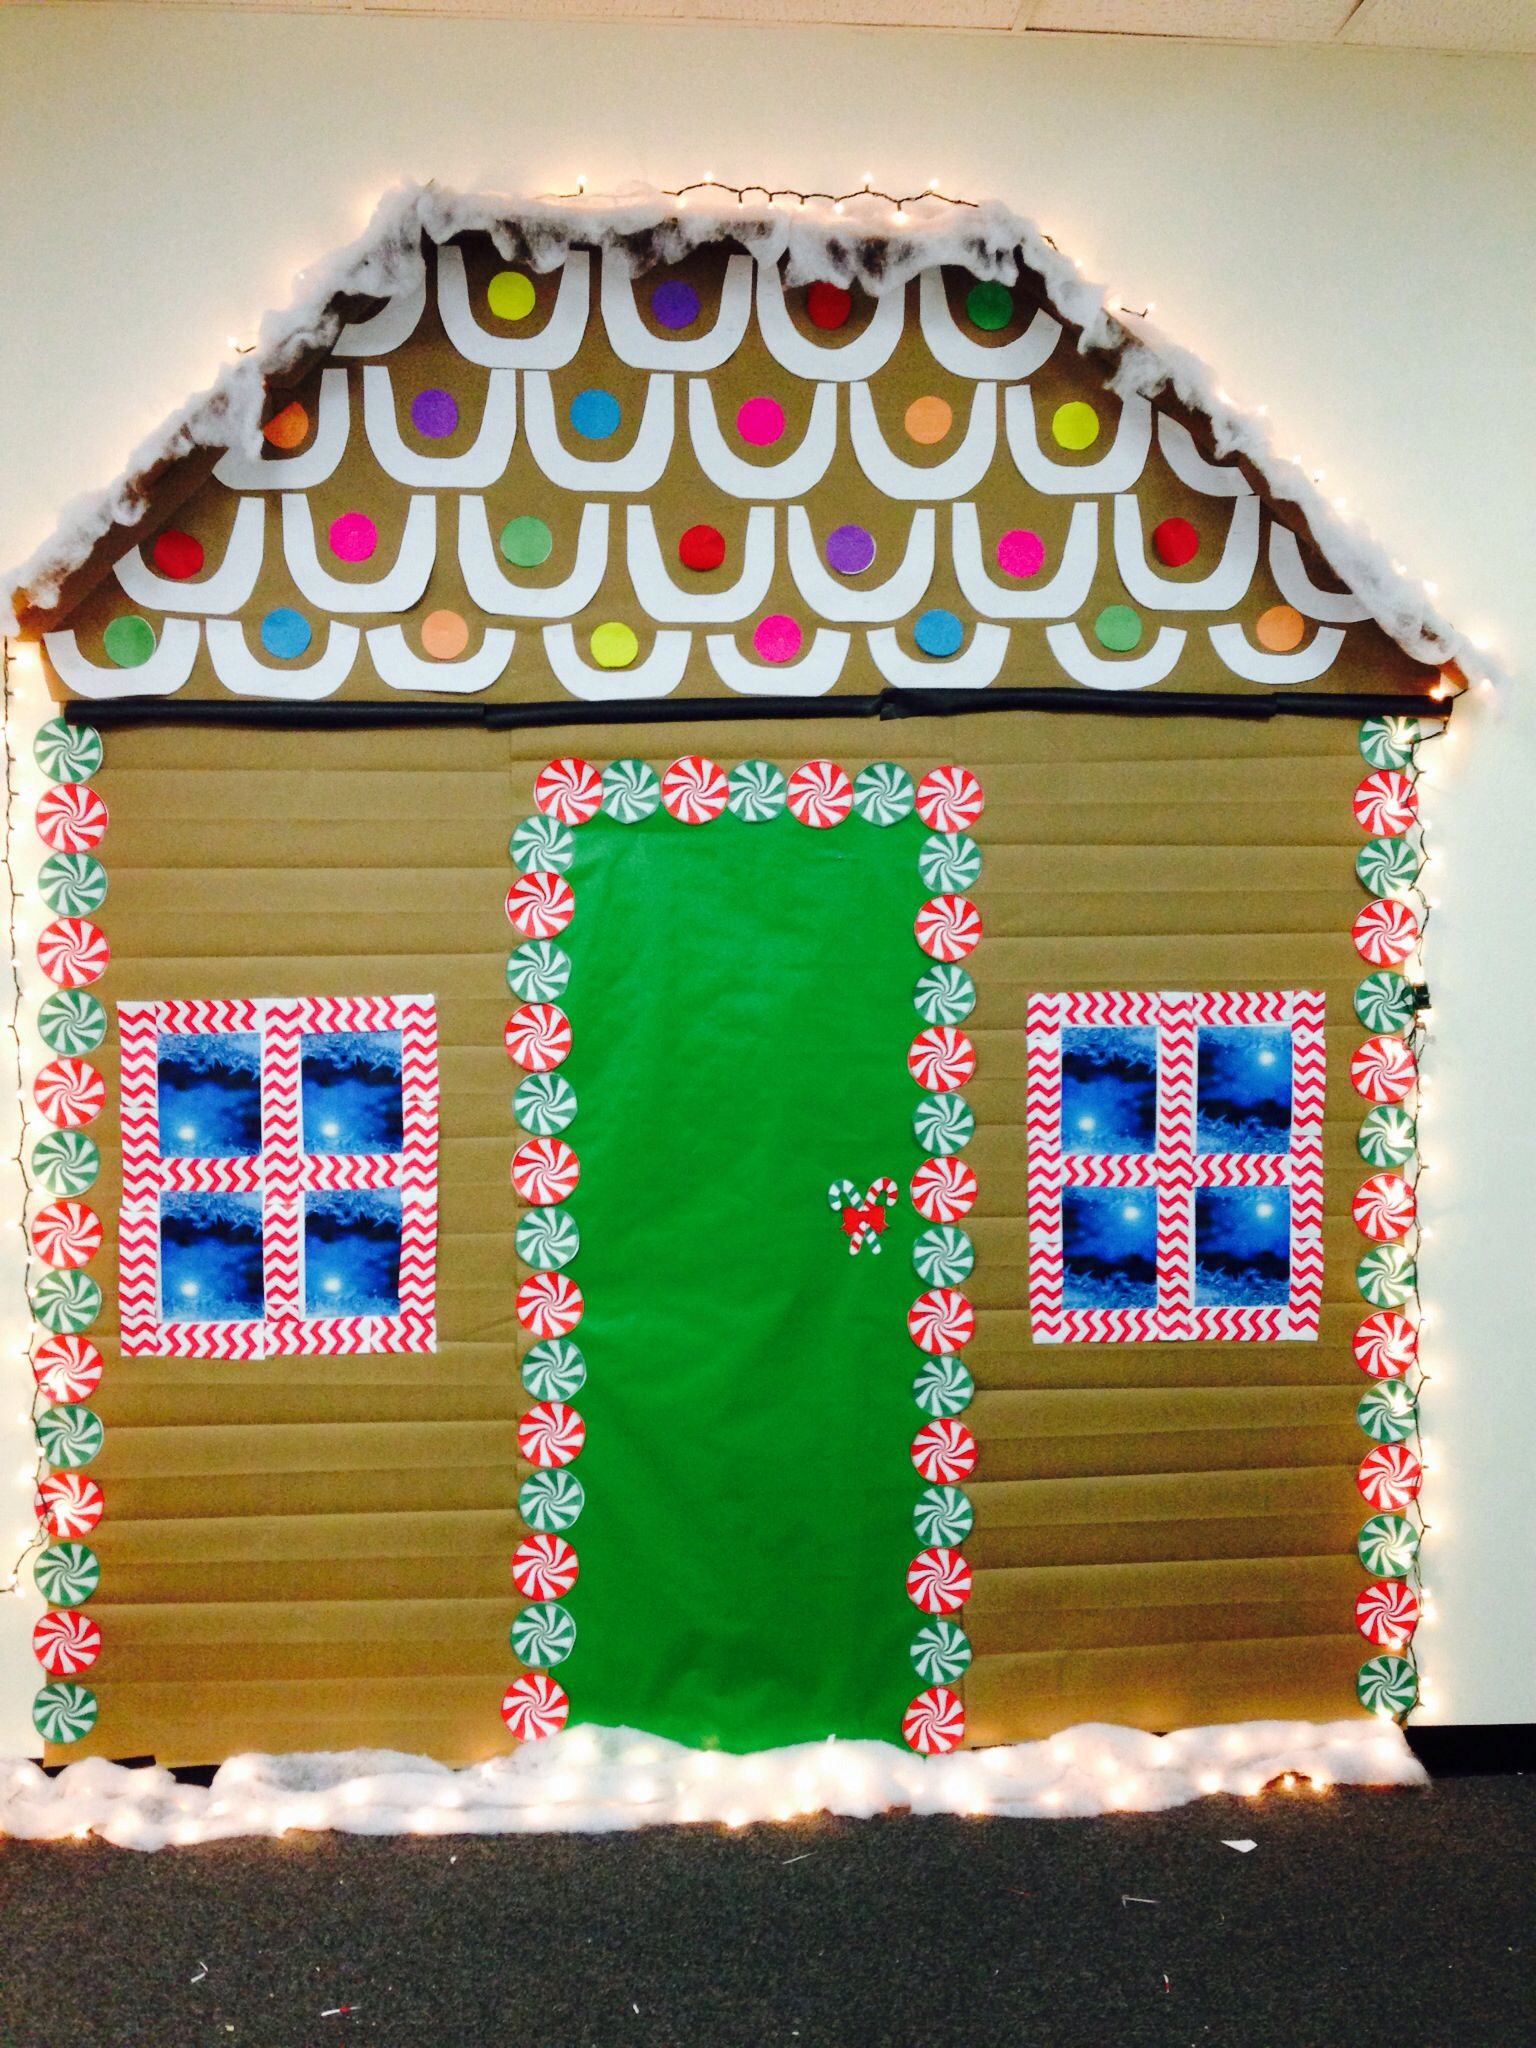 Life size gingerbread house for the office! Gingerbread